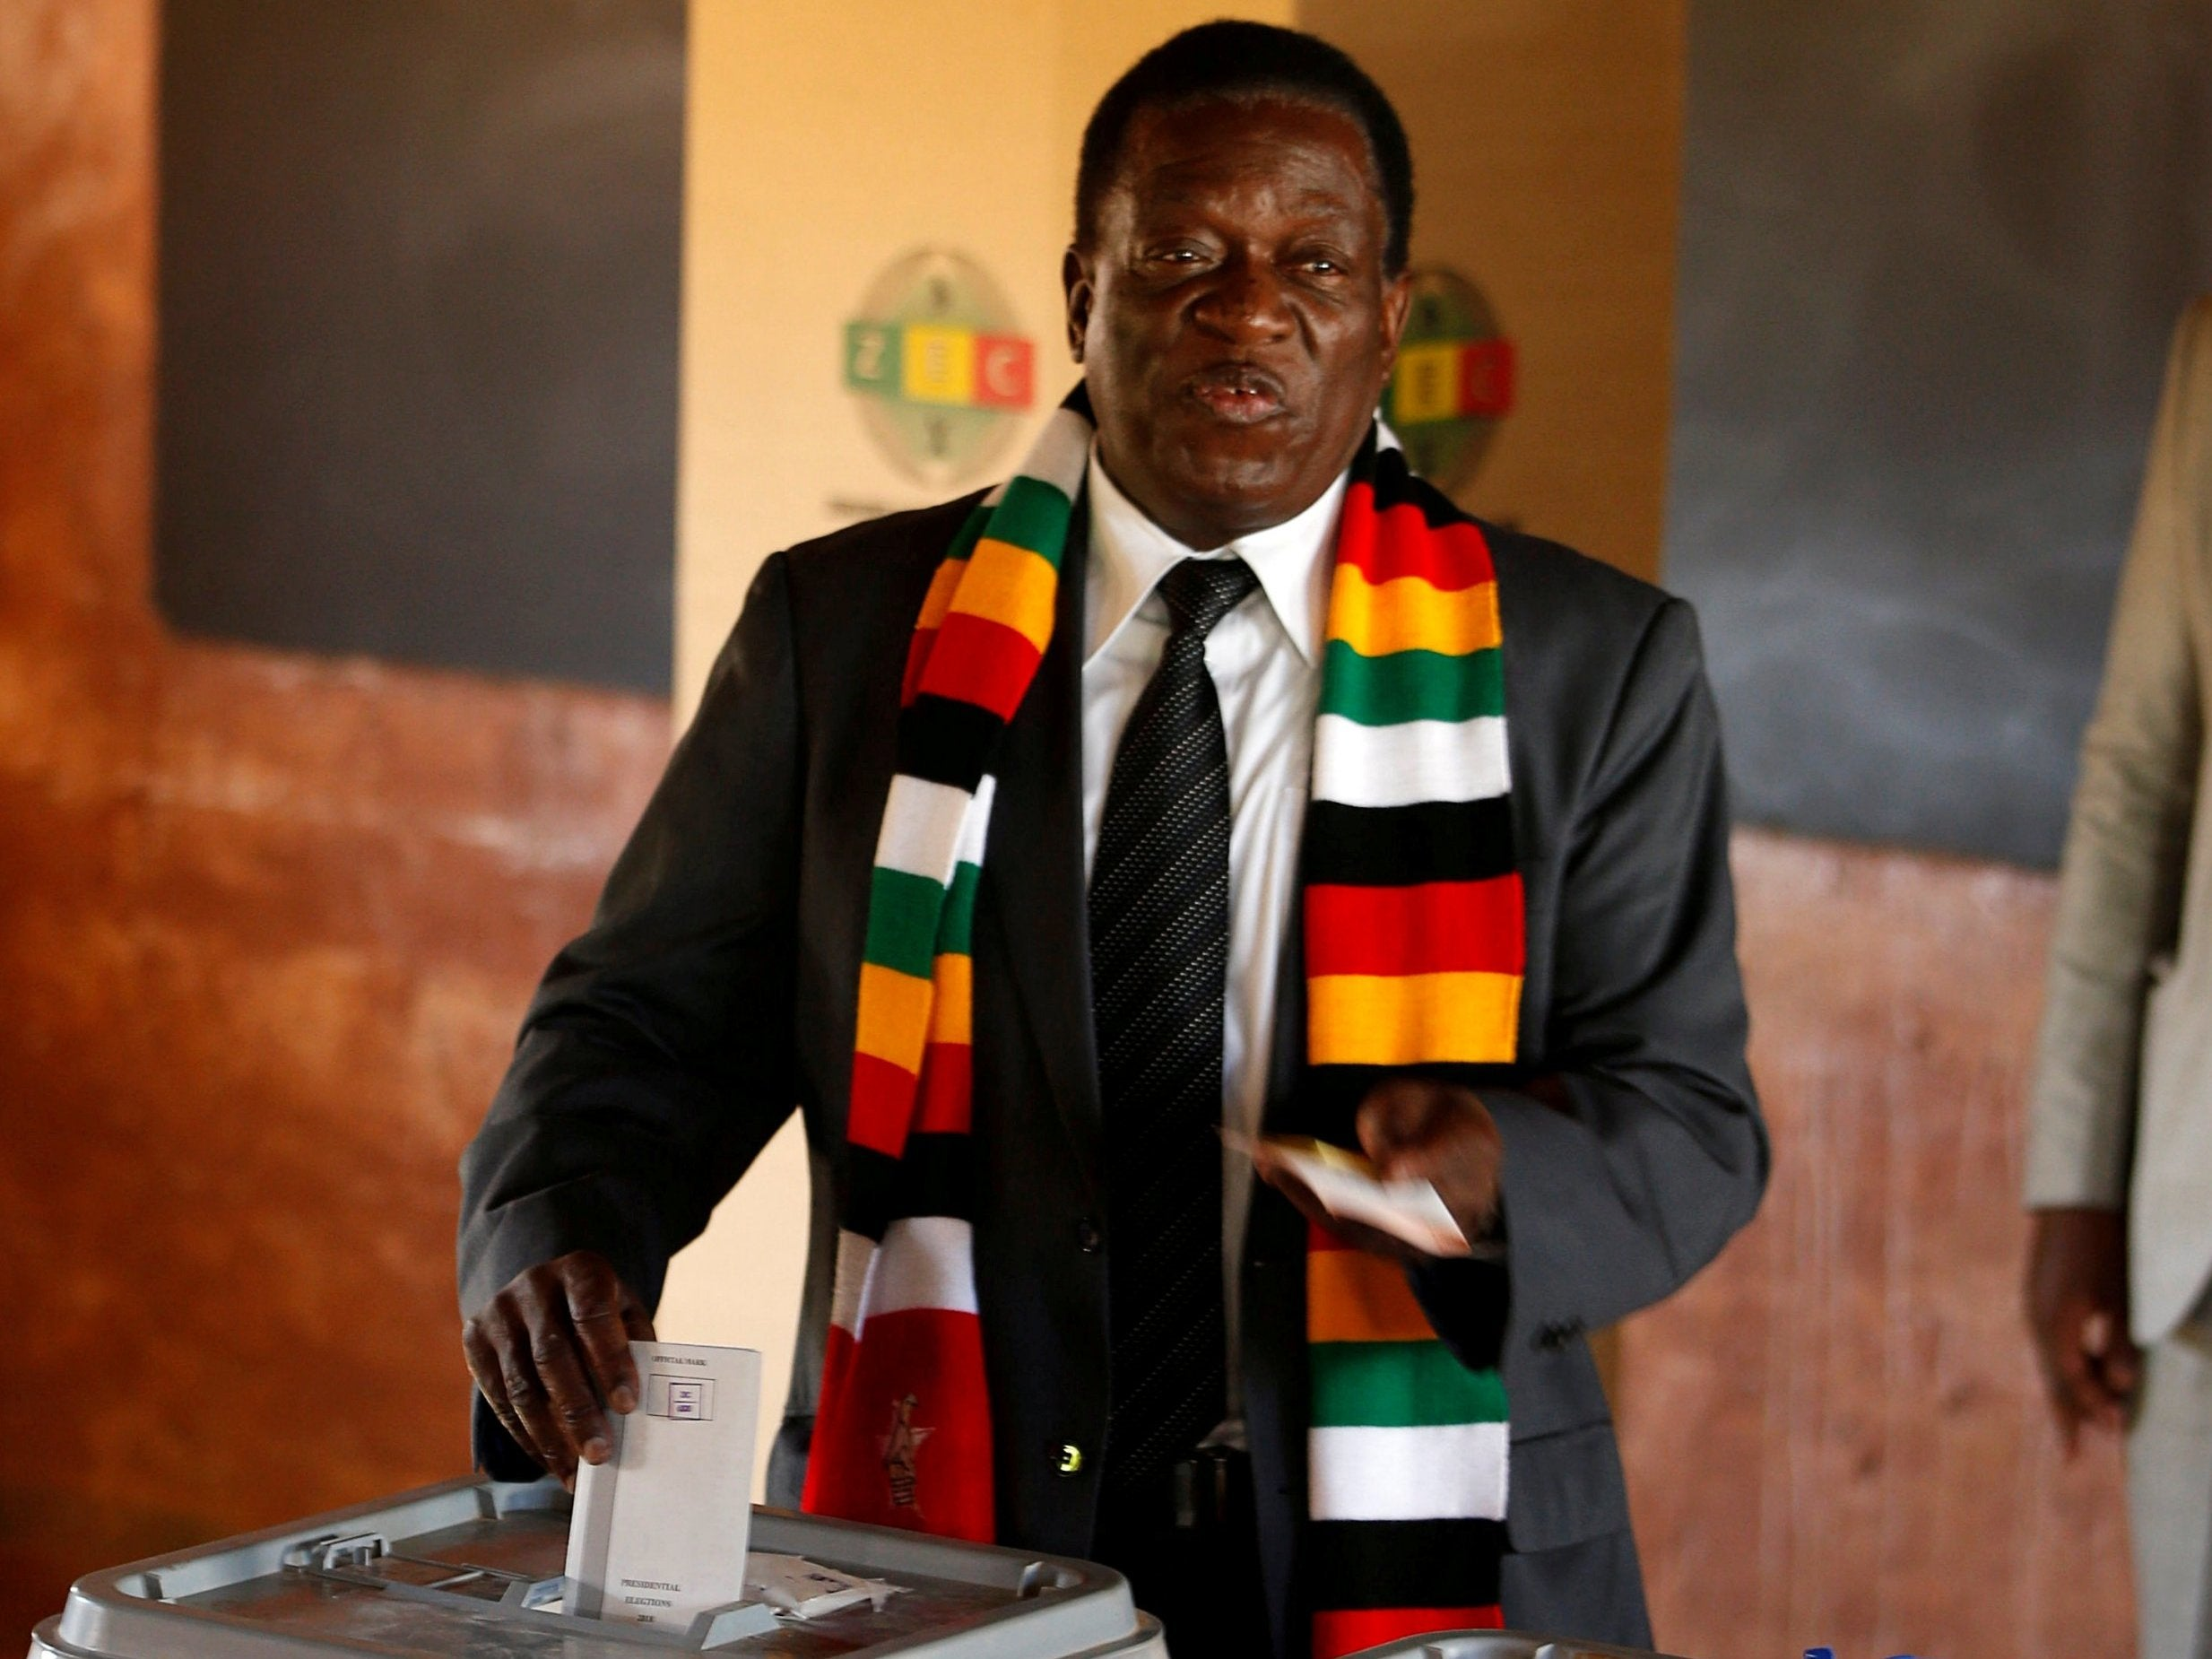 Zimbabwe election results: Emmerson Mnangagwa declared winner of country's first post-Mugabe poll as opponent Nelson Chamisa rejects vote